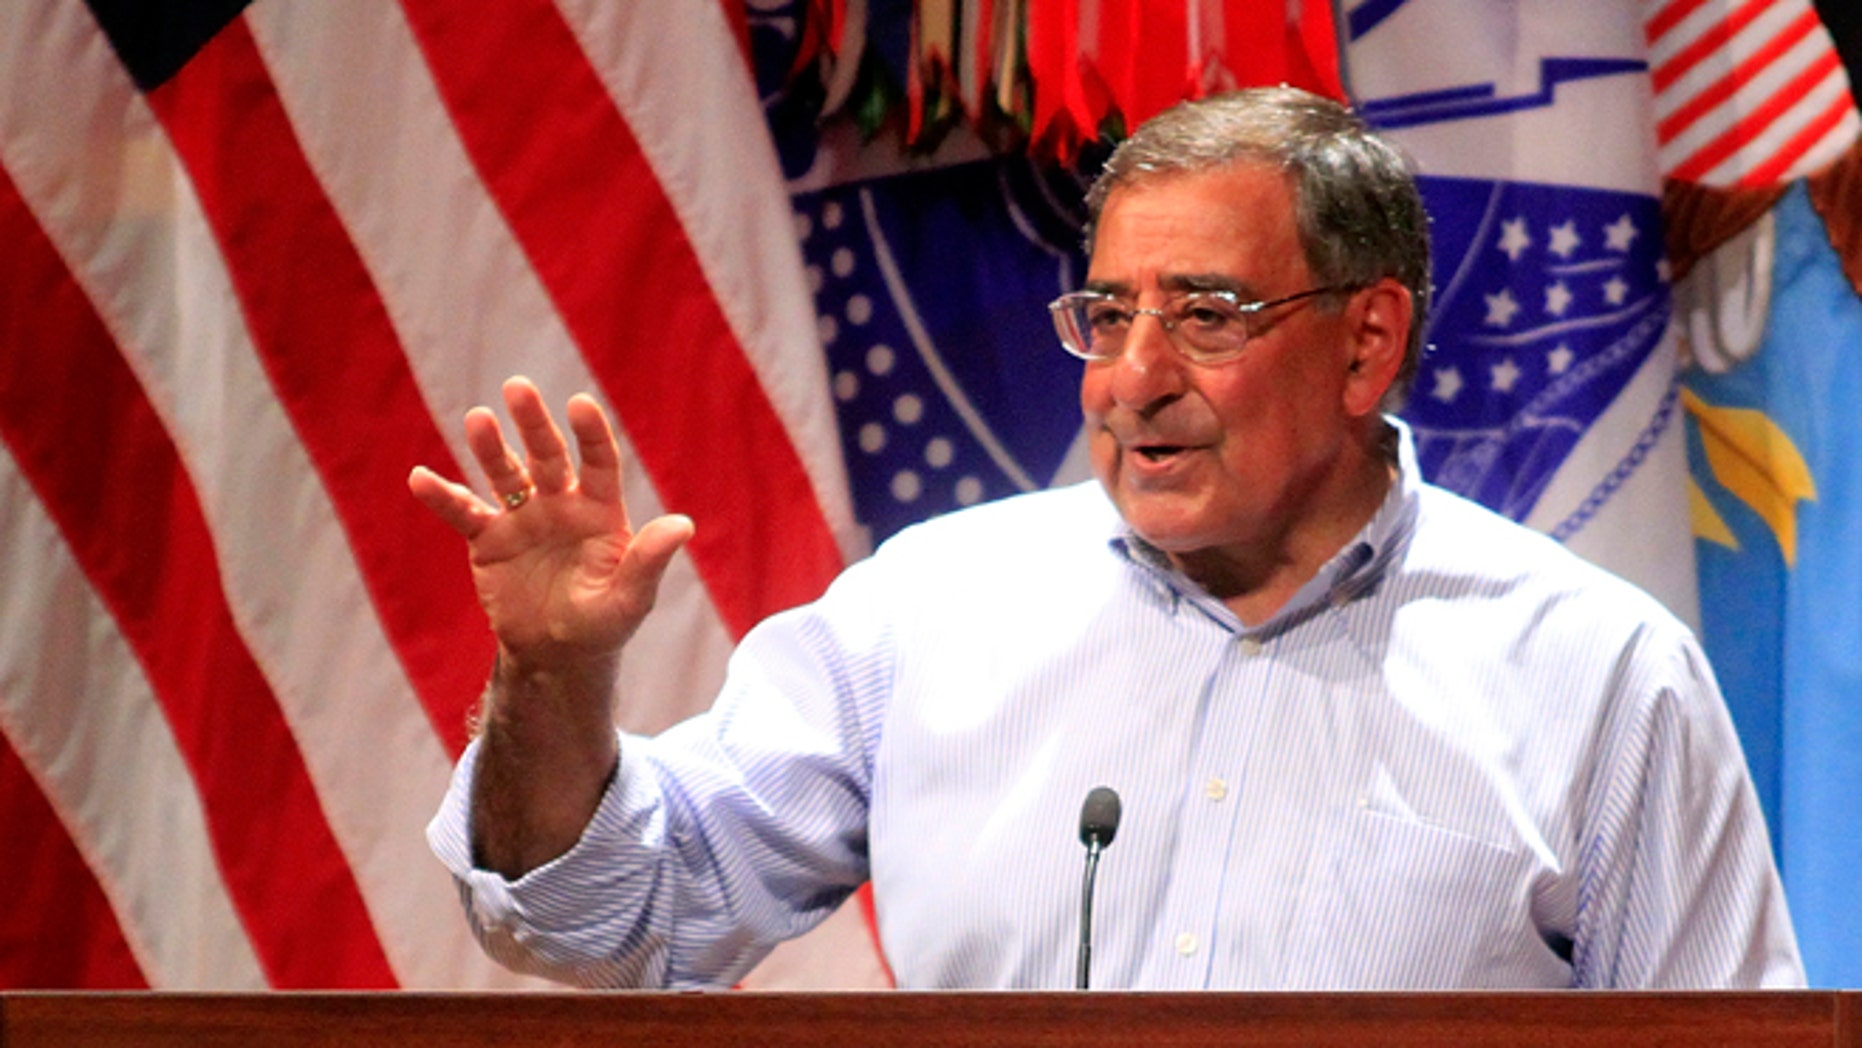 May 4, 2012: Defense Secretary Leon Panetta speaks to soldiers at Fort Benning, Ga.